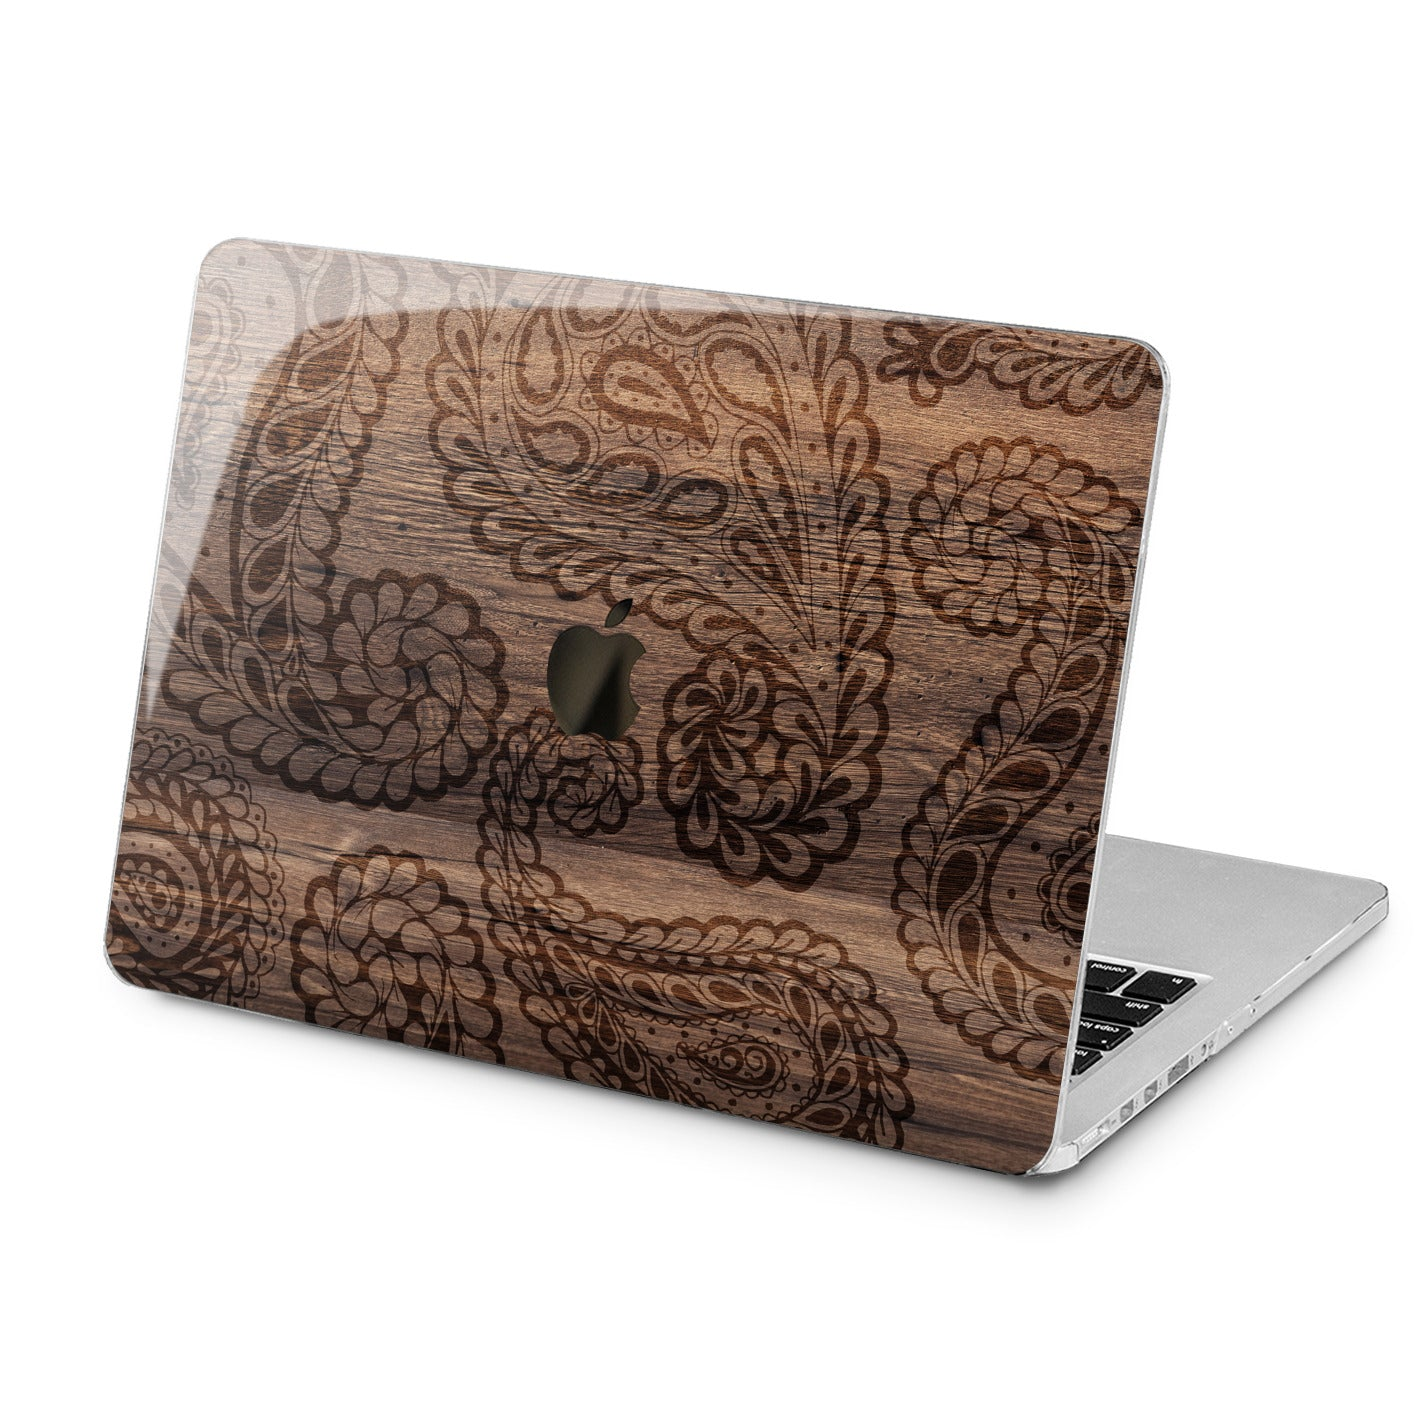 Lex Altern Lex Altern Carved Paisley Case for your Laptop Apple Macbook.